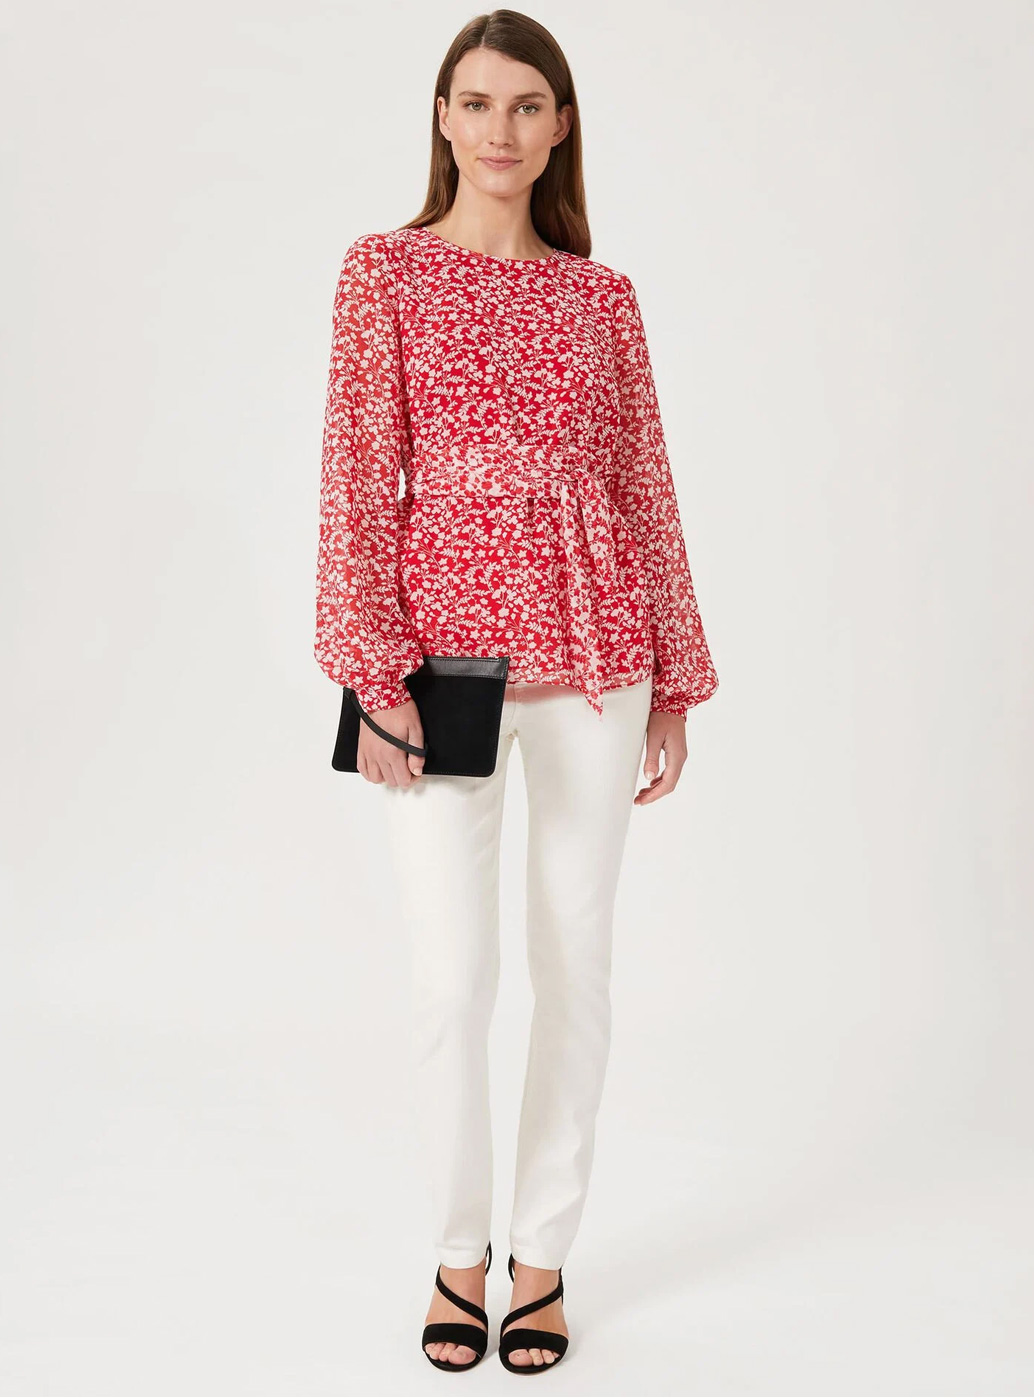 Model wears a floral print blouse and white jeans with heels and a clutch.